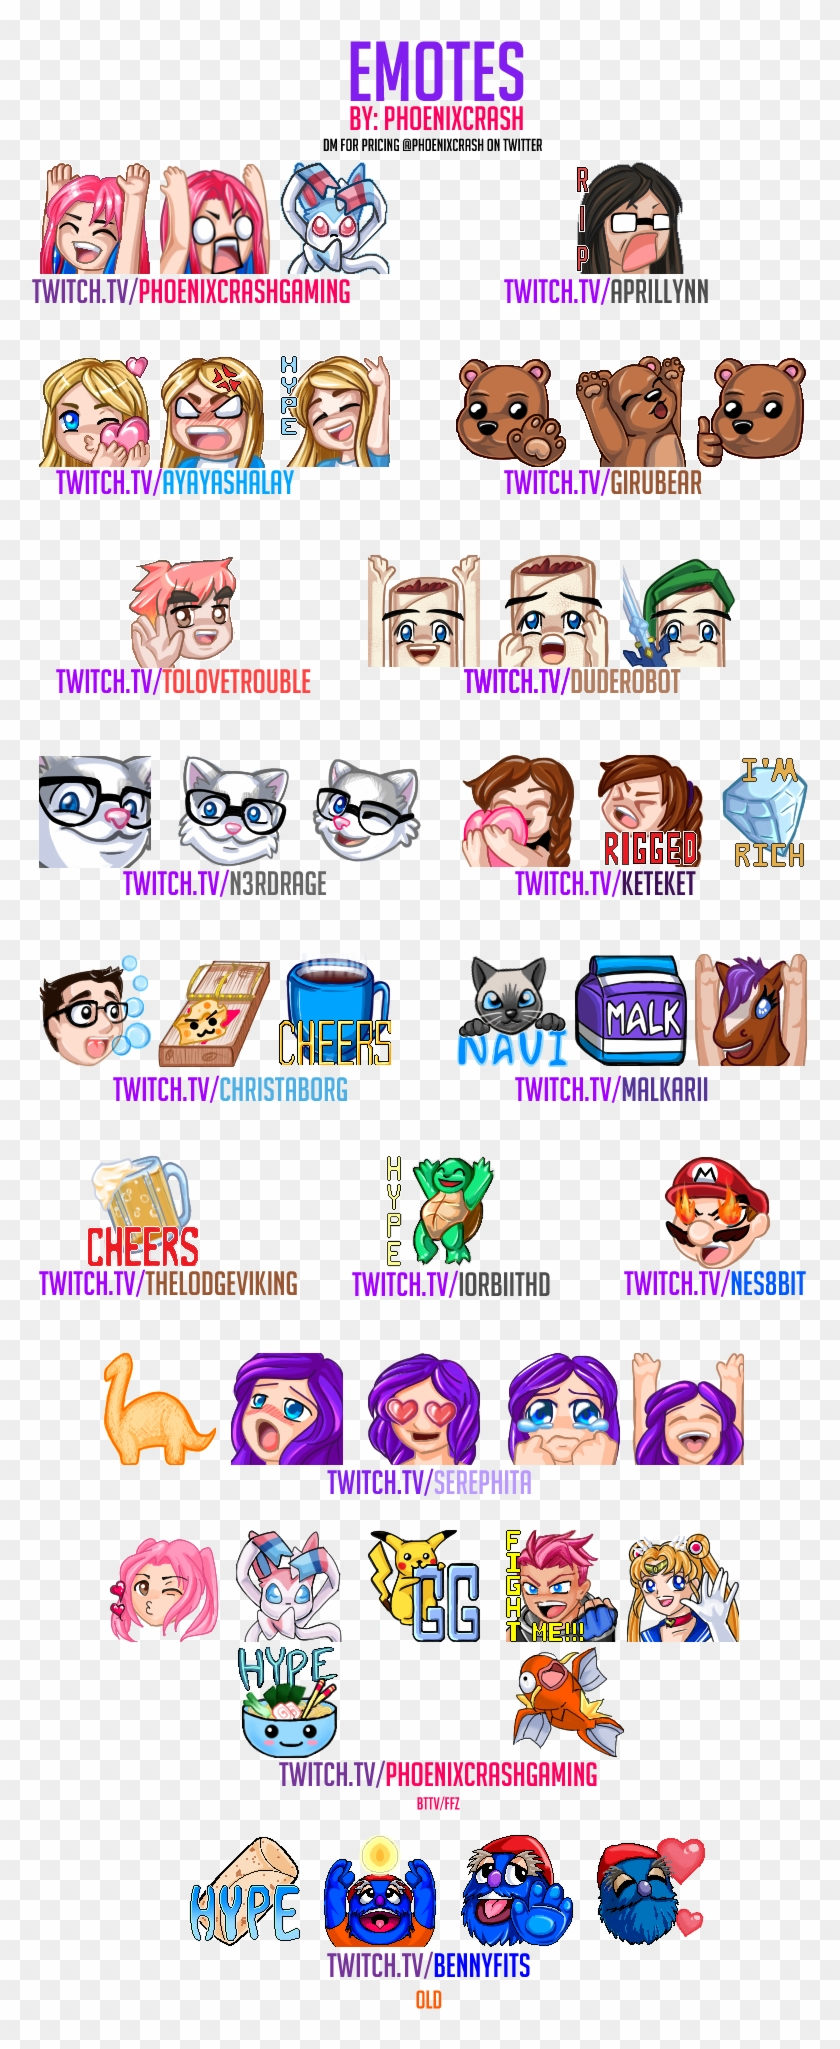 Bttv Emotes List Hide Some Emotes Betterttv Nightdev, HD Png